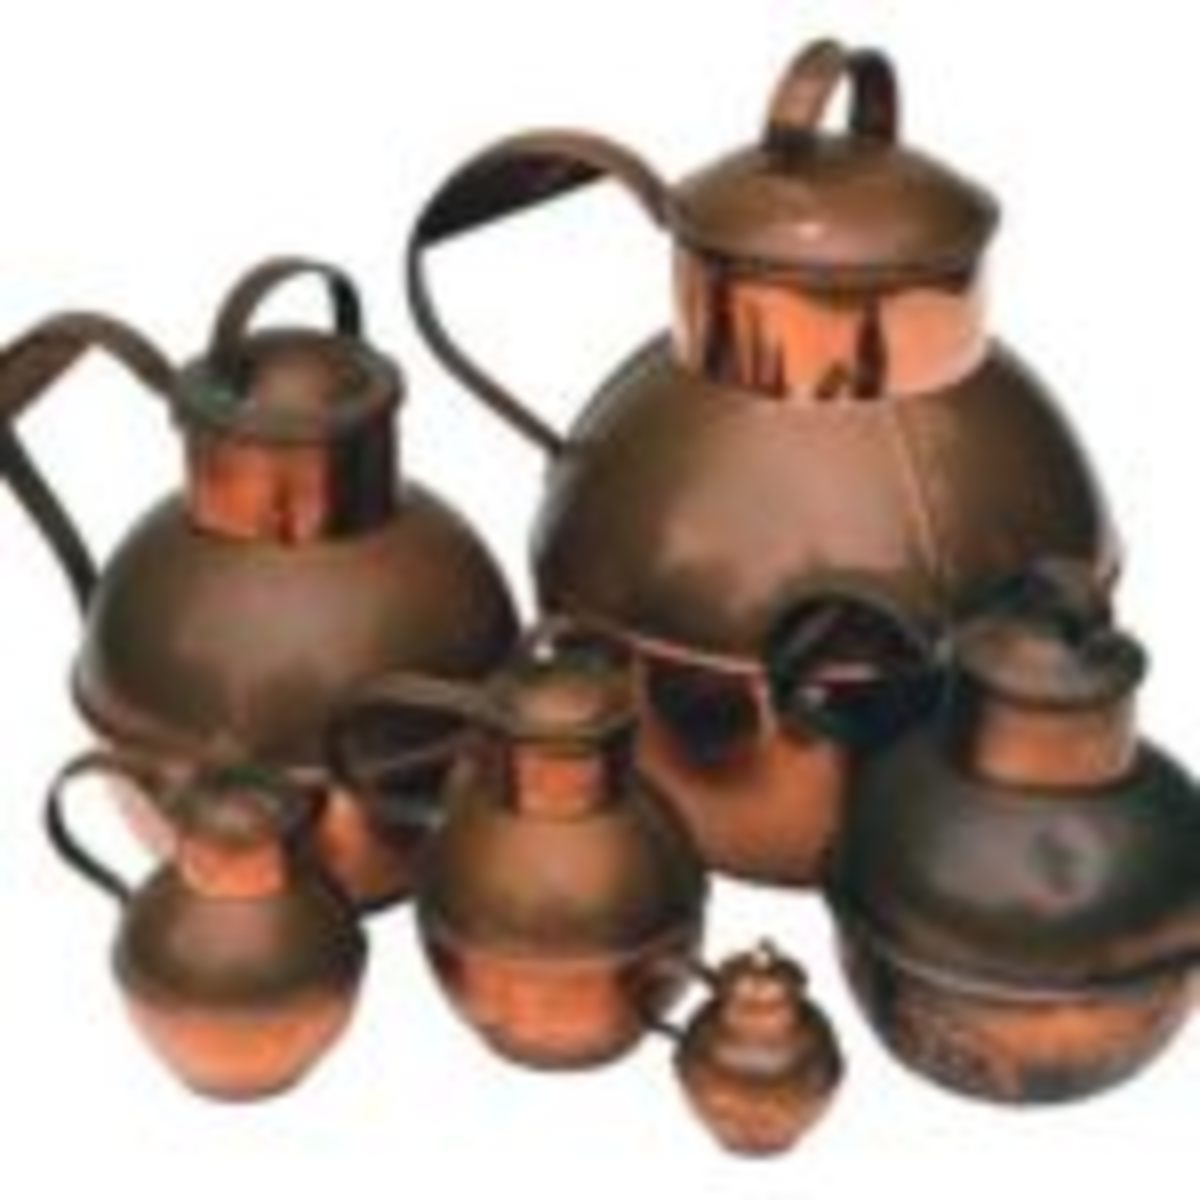 Guernsey milk pots. Guernsey is one of the Channel Islands just off the northern coast of France. These containers have been made in this same design for over 1,000 years. The examples here range in volume from one gallon to an eighthof a pint.